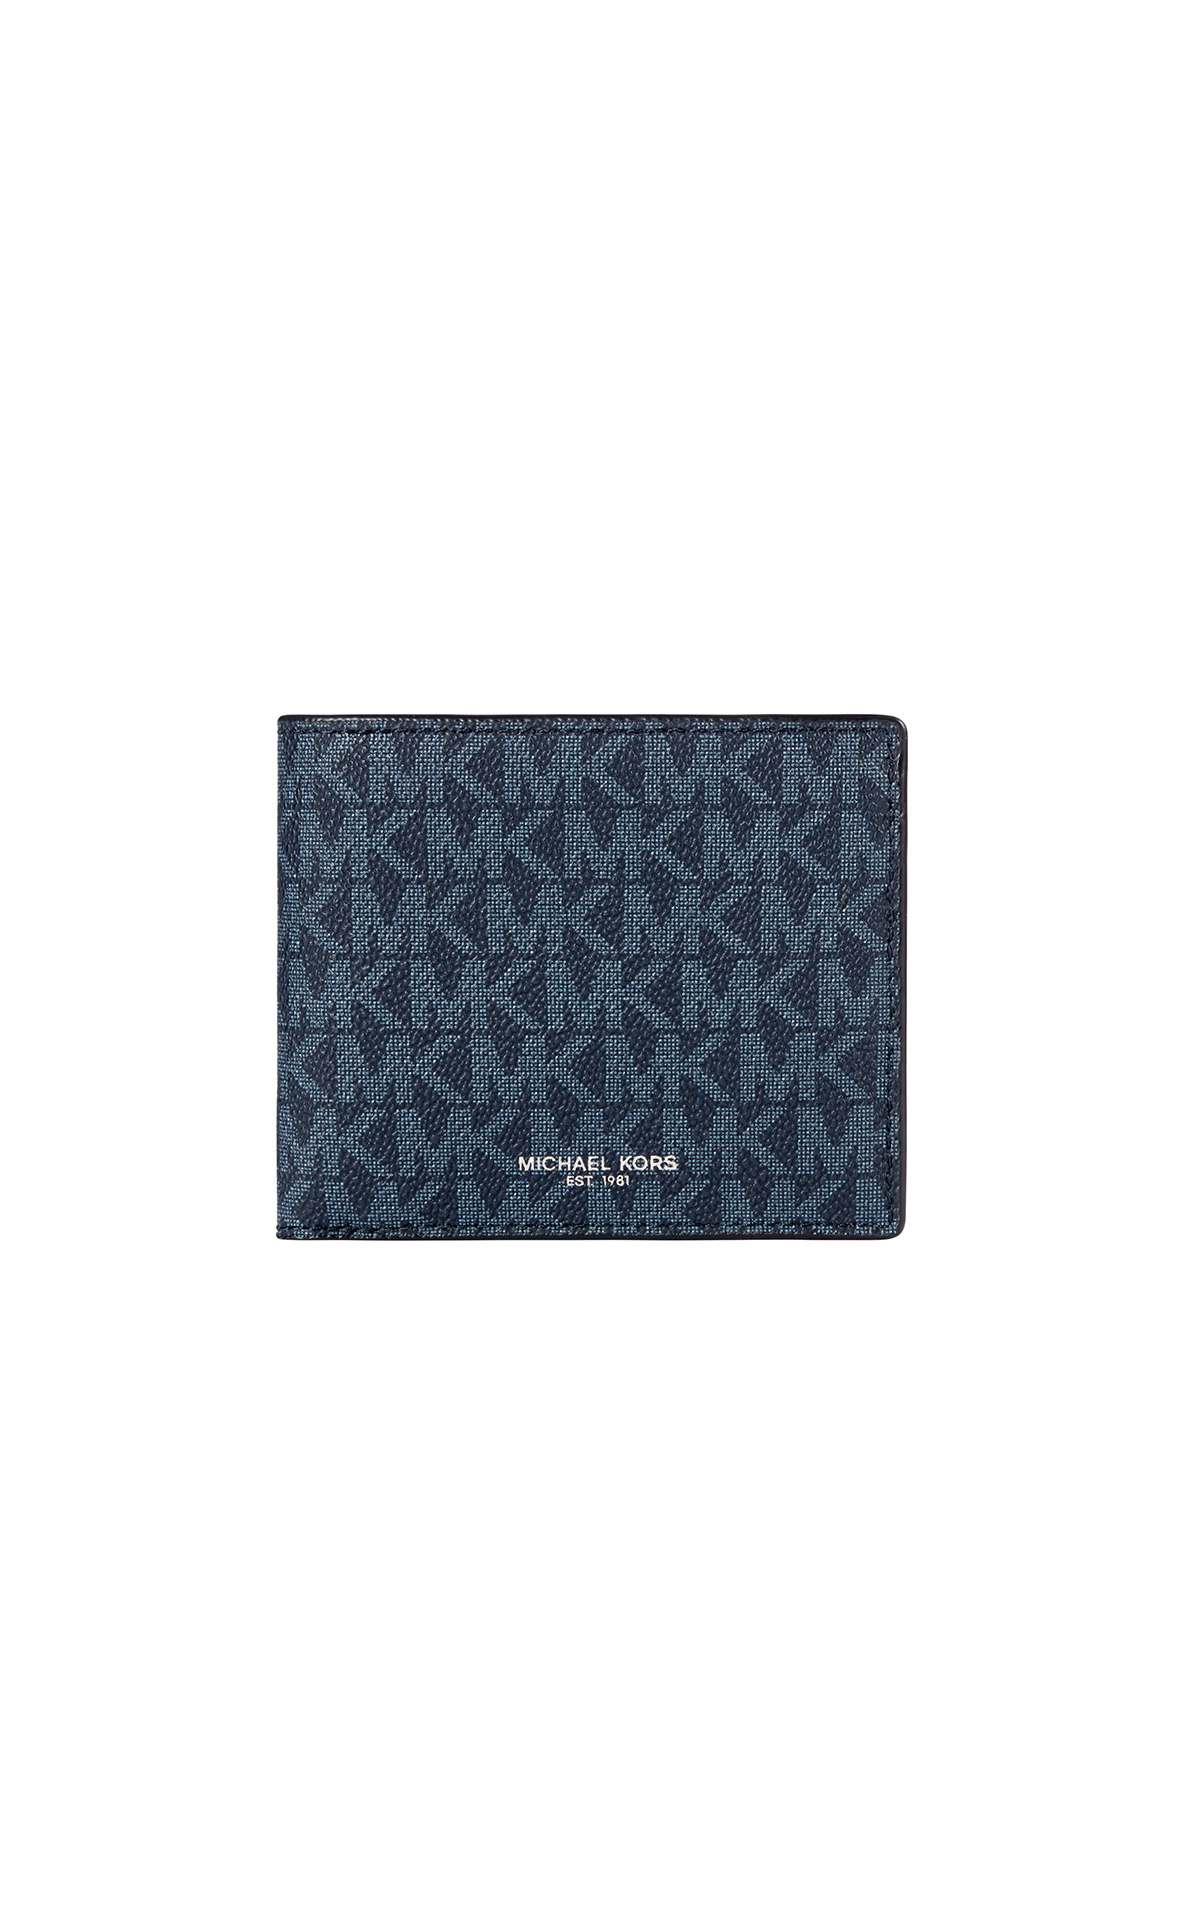 Michael Kors Mens Cooper billfold with coin pocket in admiral blue at The Bicester Village Shopping Collection